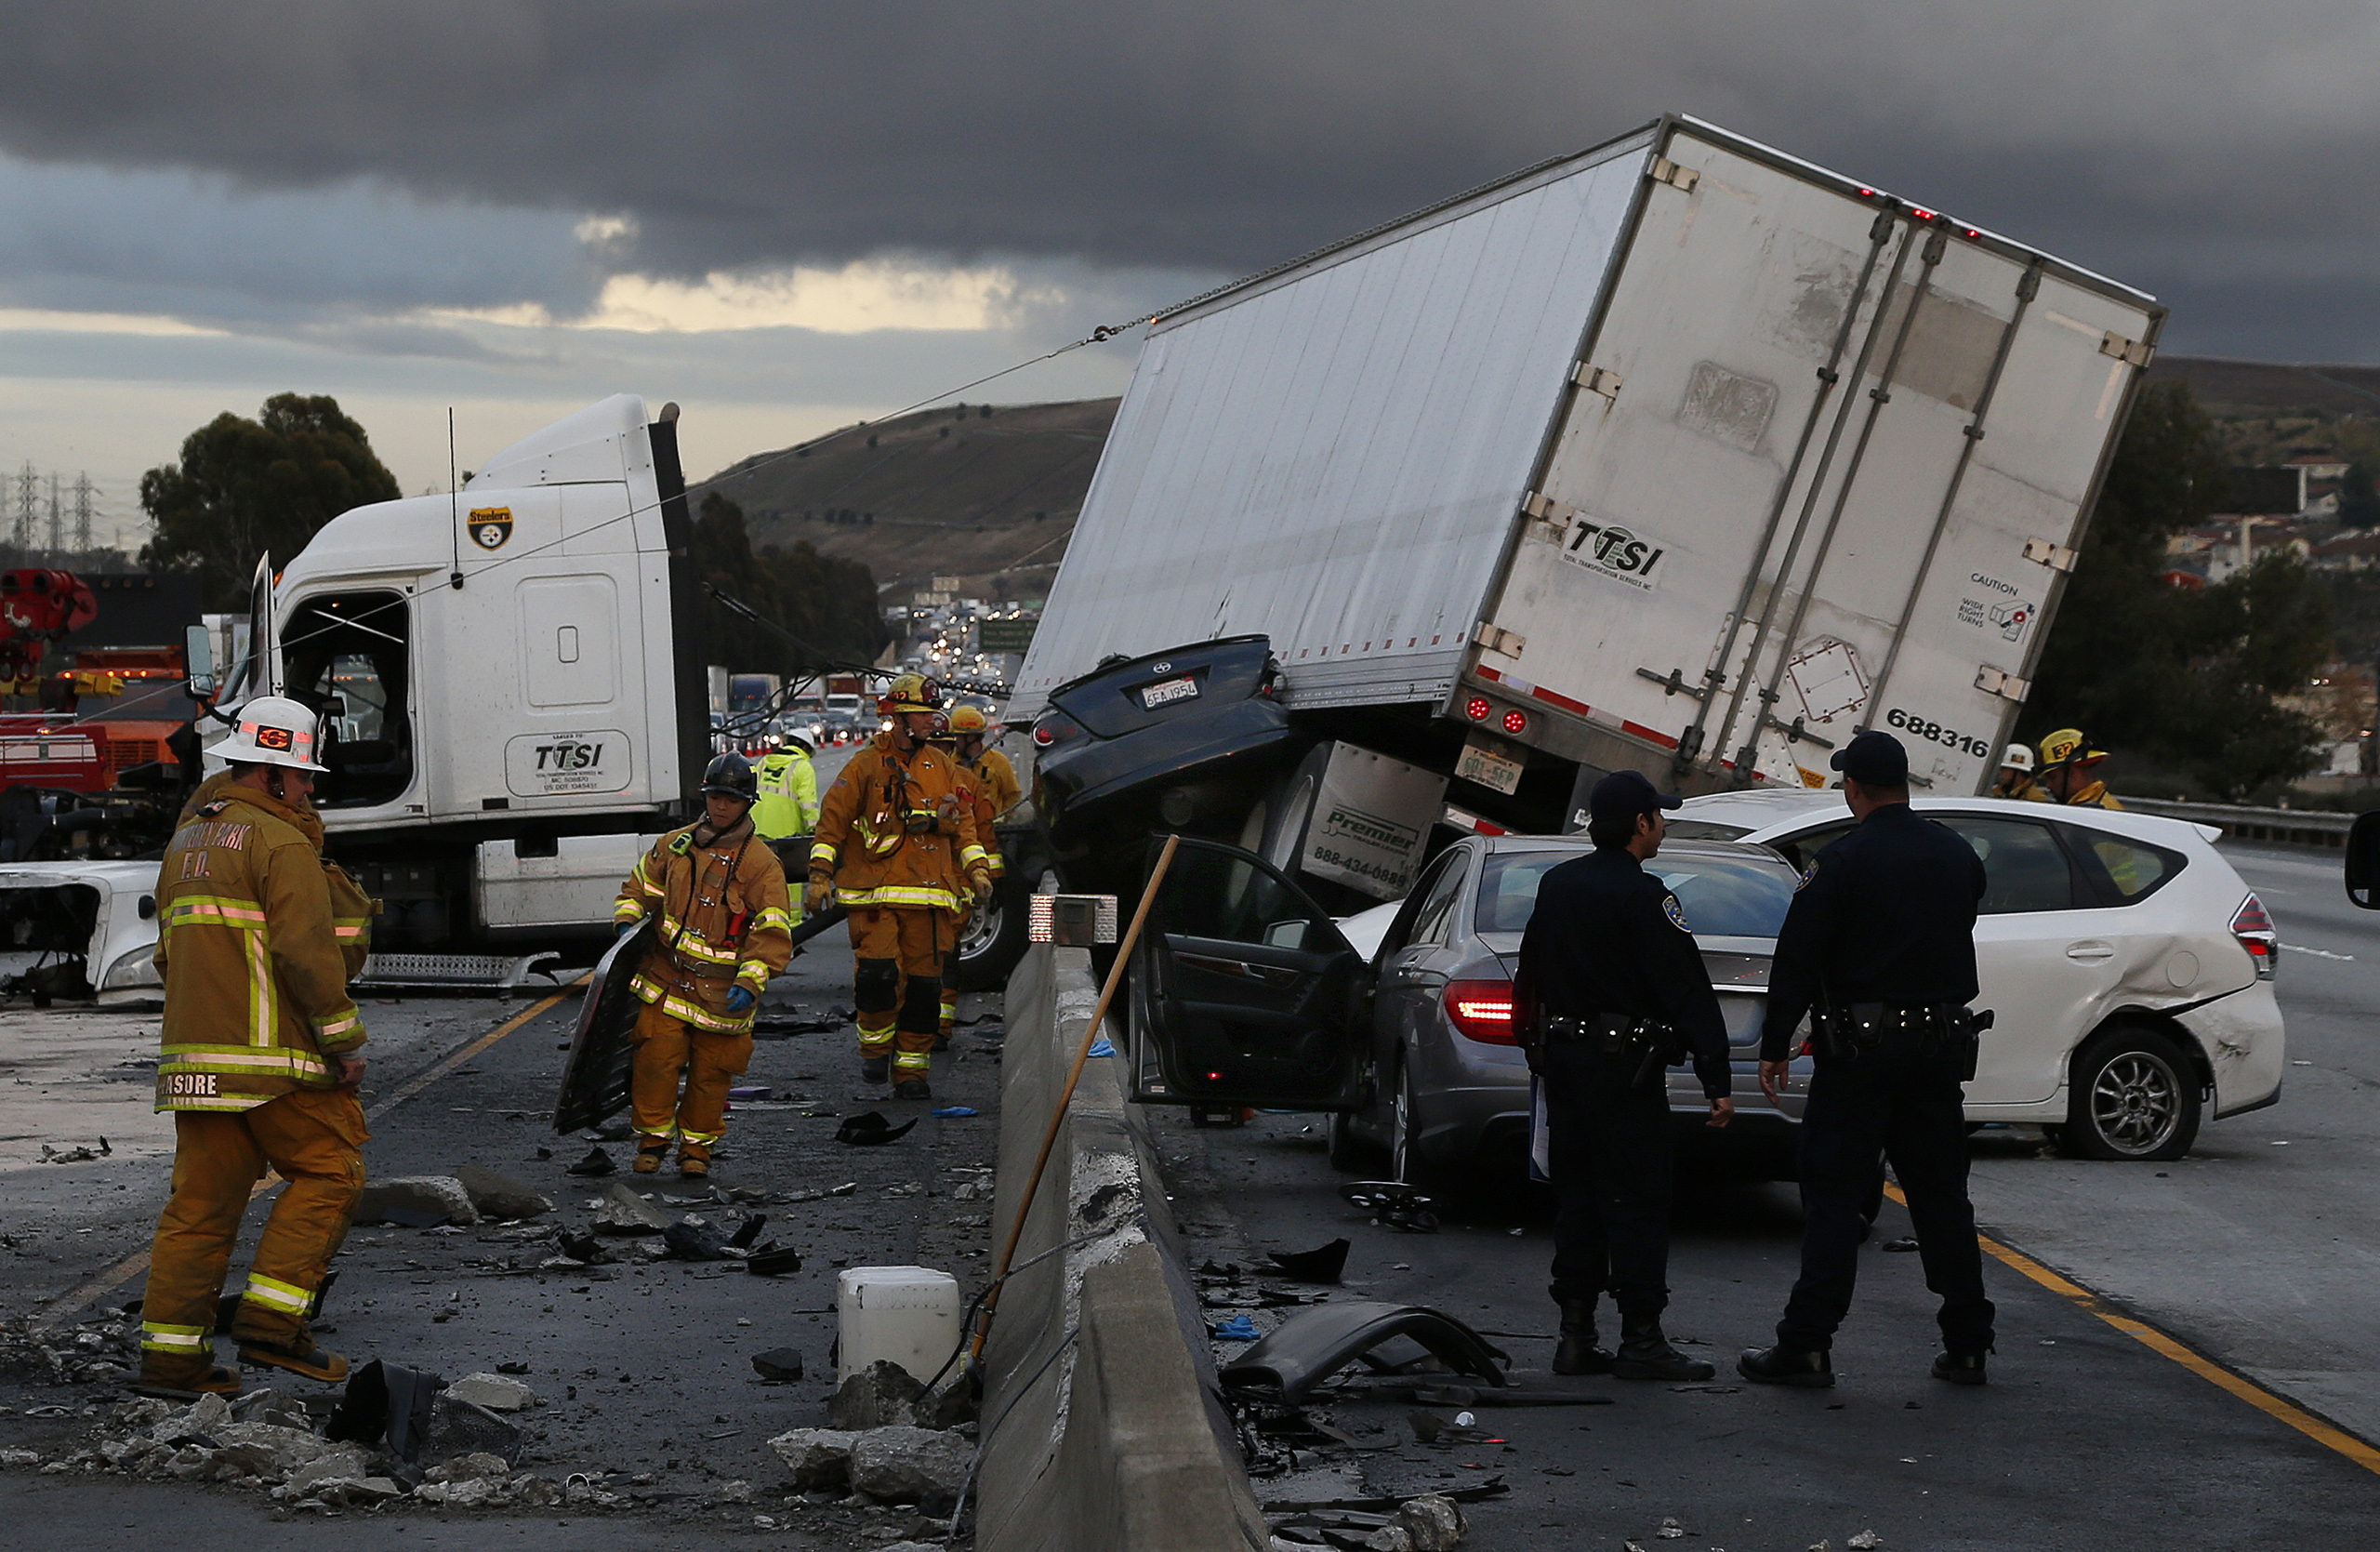 Firefighters and rescue personnel are on scene after a big rig crashed through the center divider crushing a car underneath and causing four other vehicles to collide on the rain slicked 60 freeway near the Garfield Exit in Monterey Park, Calif.  on January 5, 2016.